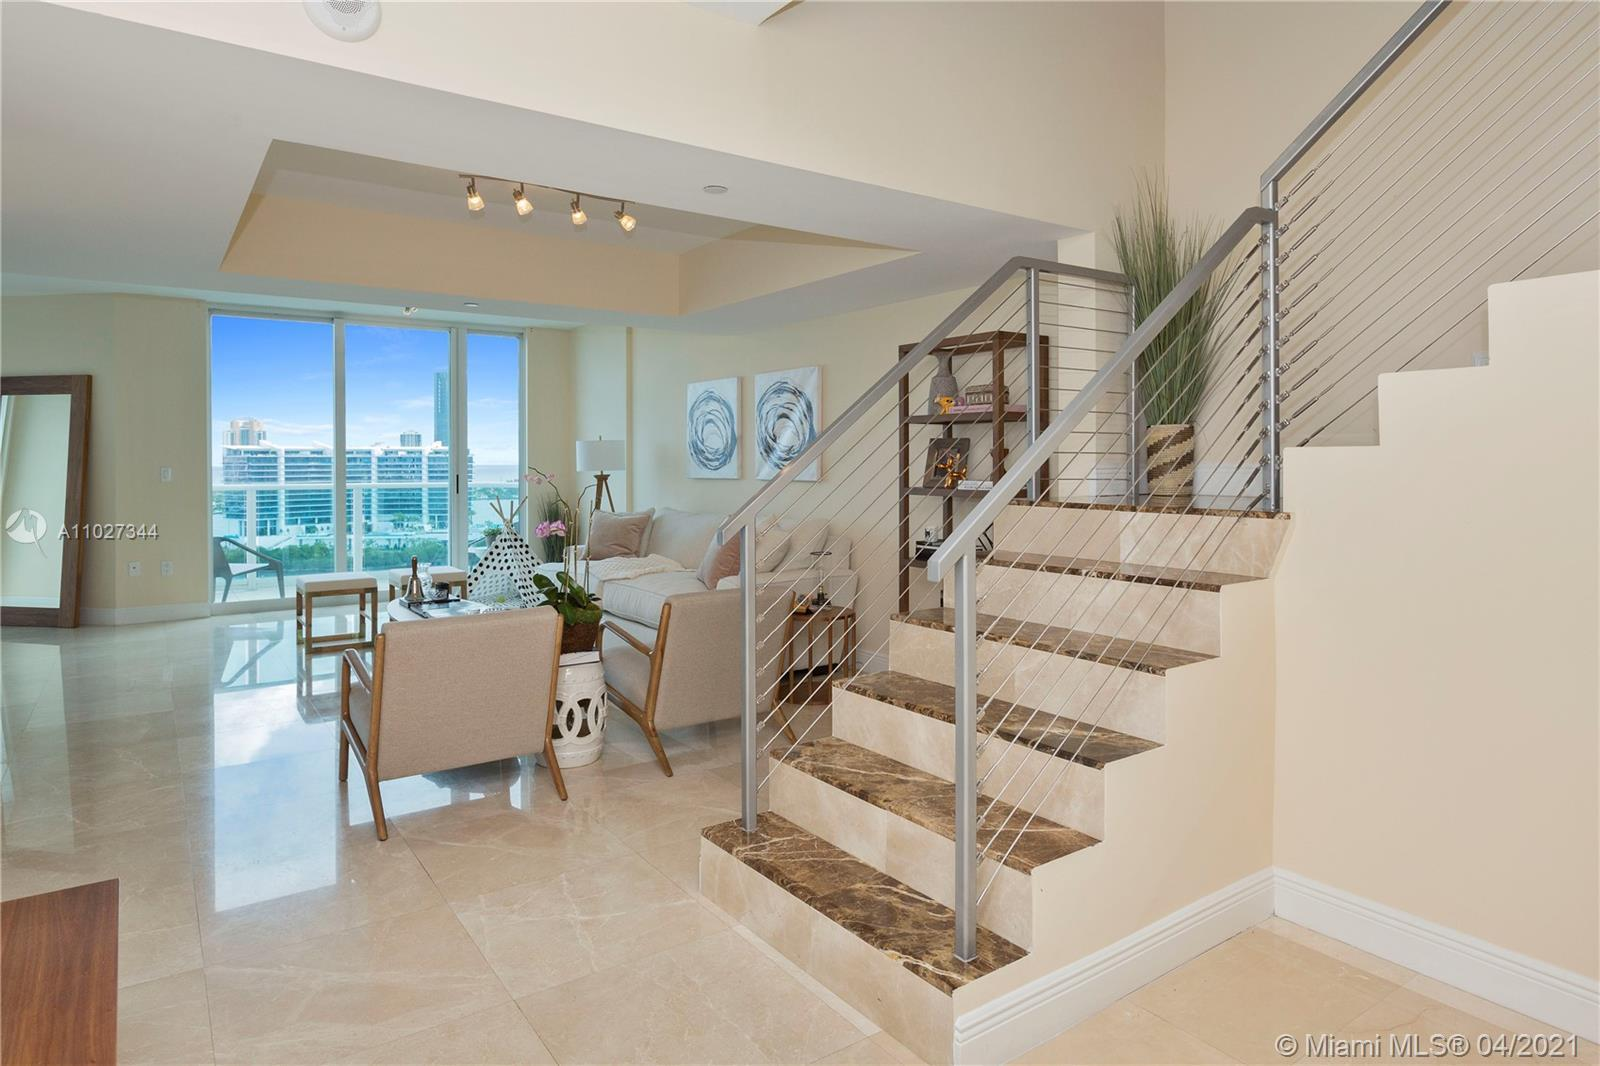 Enjoy living in this amazing Two-story waterfront Residence with fabulous Ocean, Intracoastal, and B